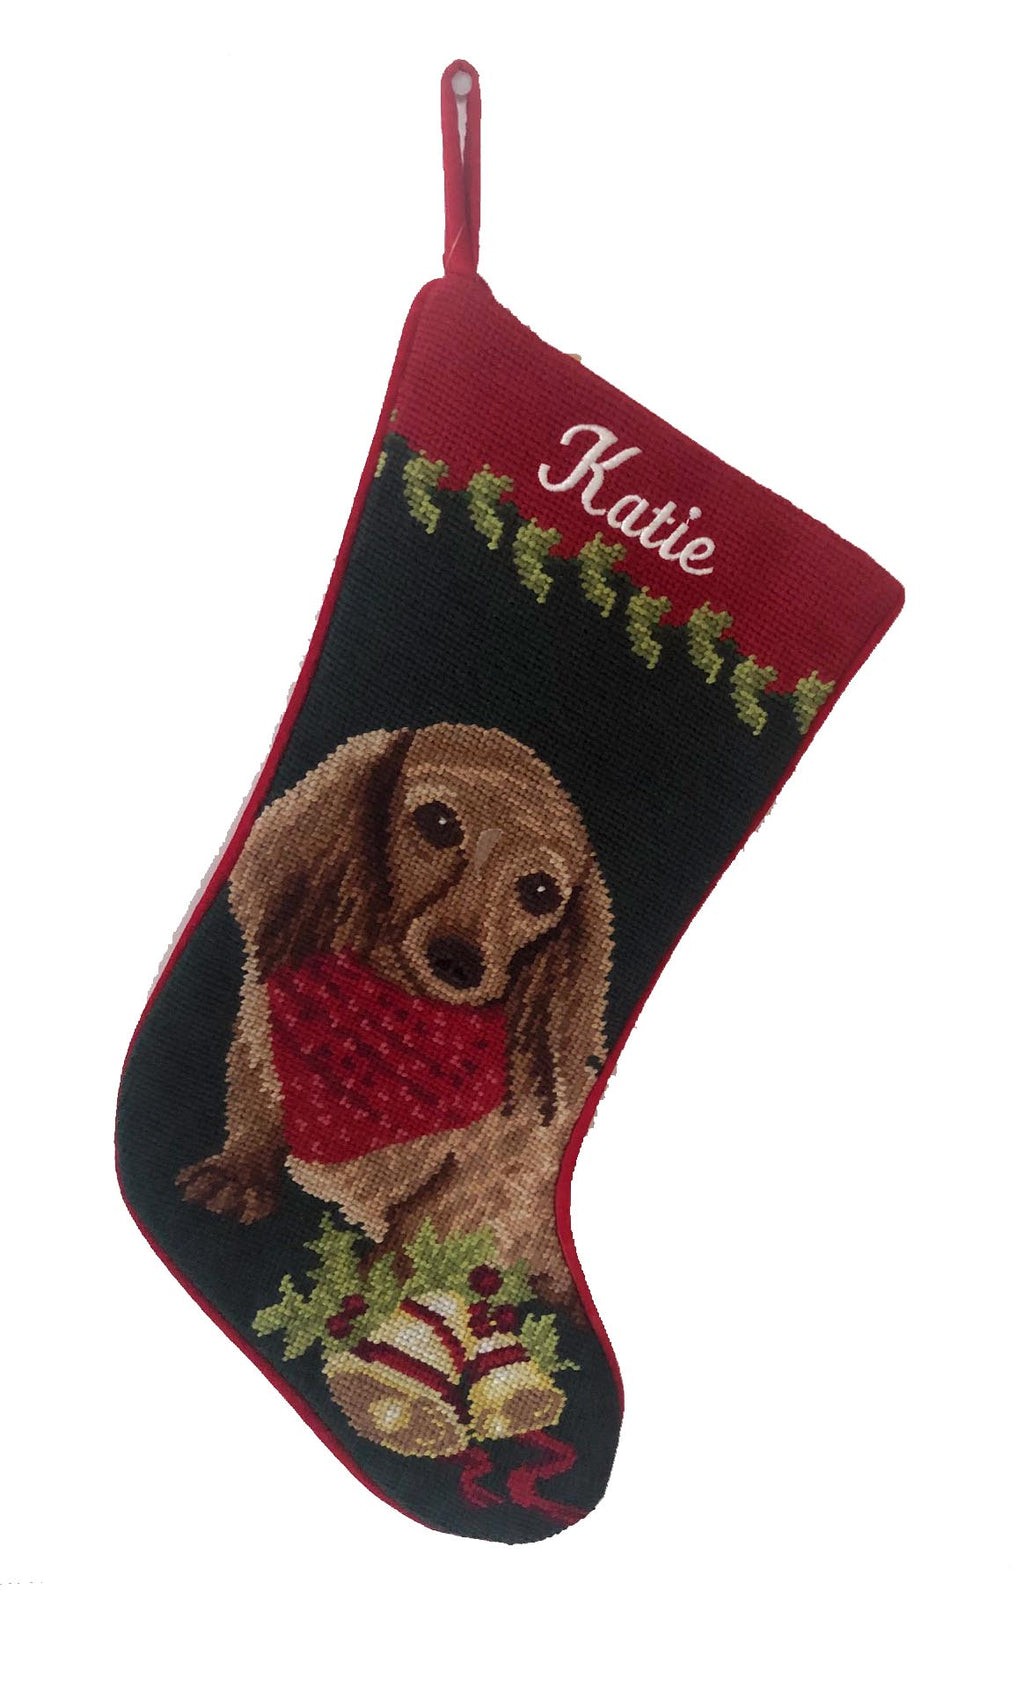 Needlepoint Christmas Dog Breed Stocking -Dachshund - Long-haired Red with Bandanna - A Pet's World